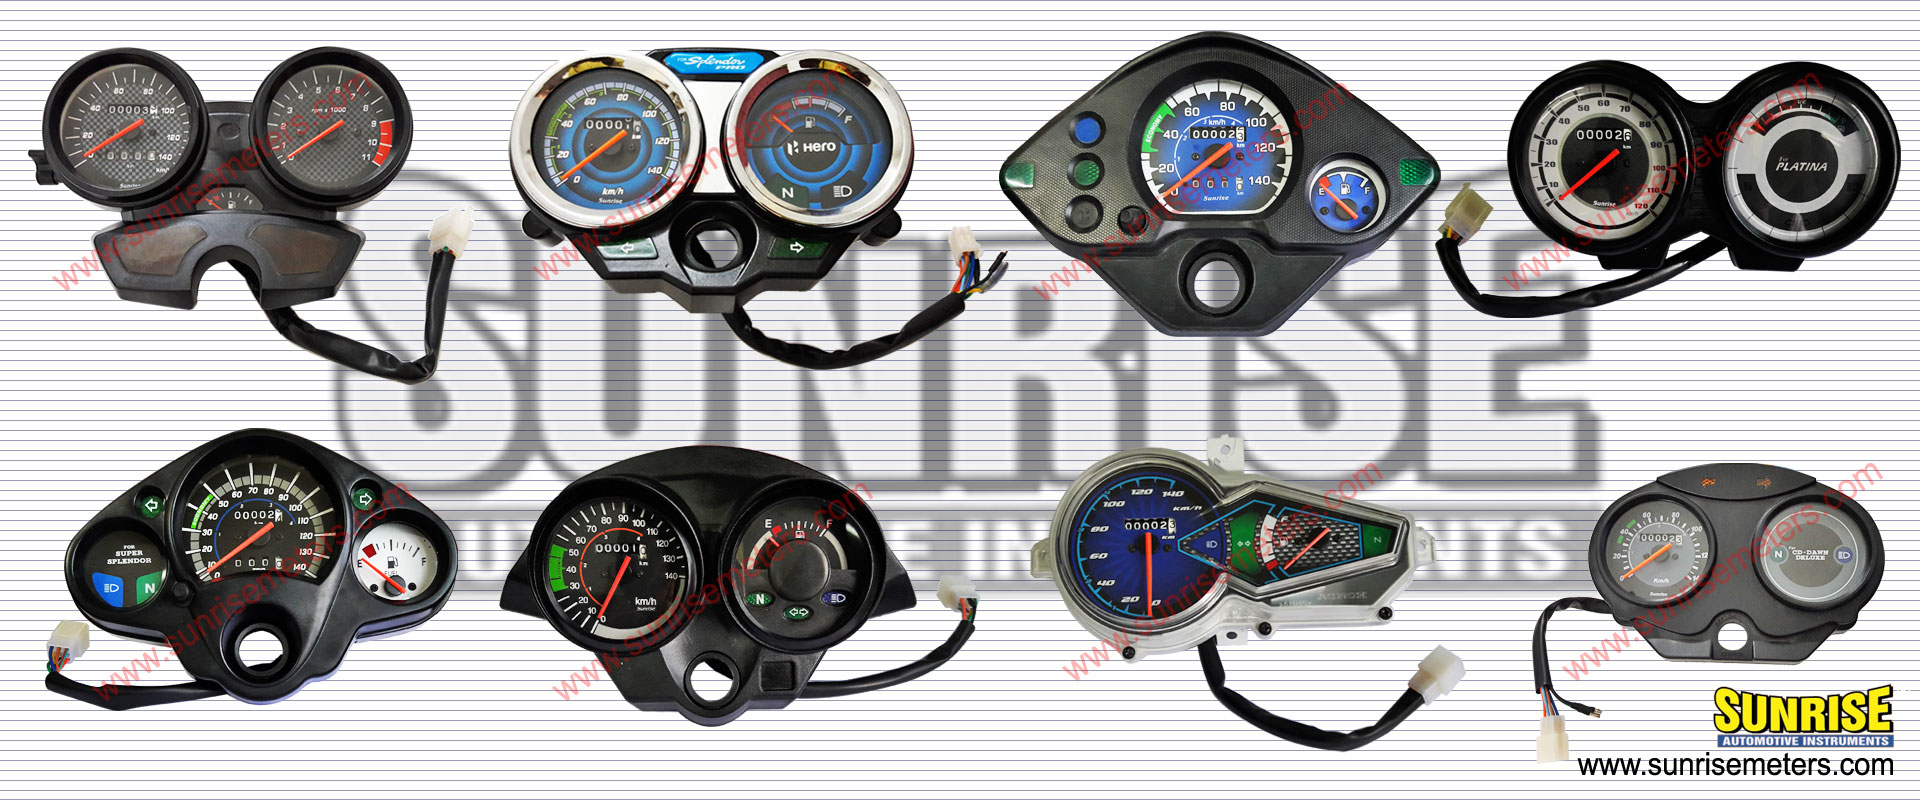 three wheeler speedo meters automotive speedo meters manufacturers suppliers in india punjab ludhiana